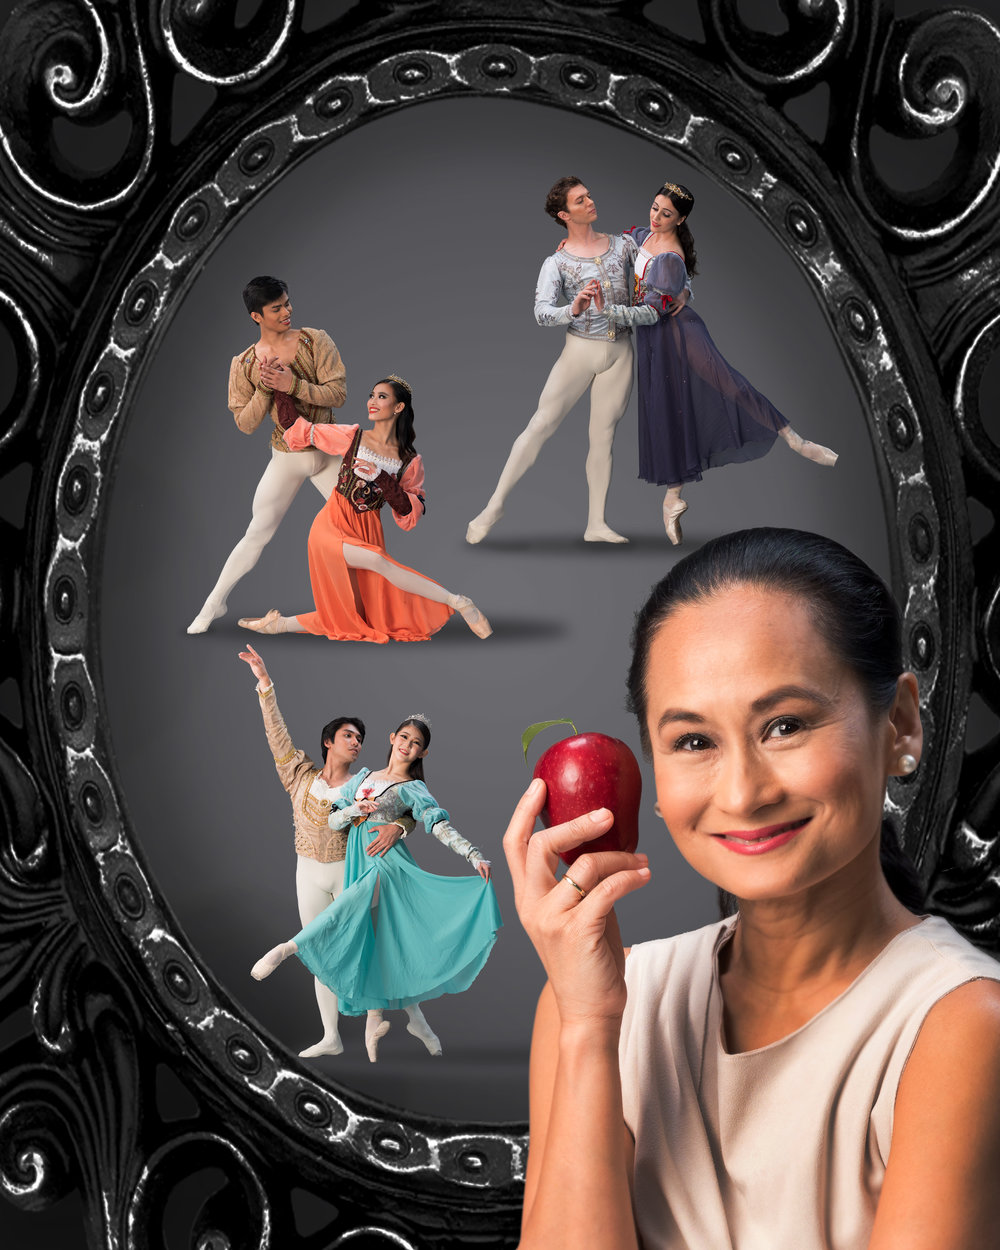 The animated Disney film    Snow White    was a huge part of Lisa Macuja-Elizalde's childhood. Now she has created her own ballet version of the fairy tale. Photo by G-nie Arambulo